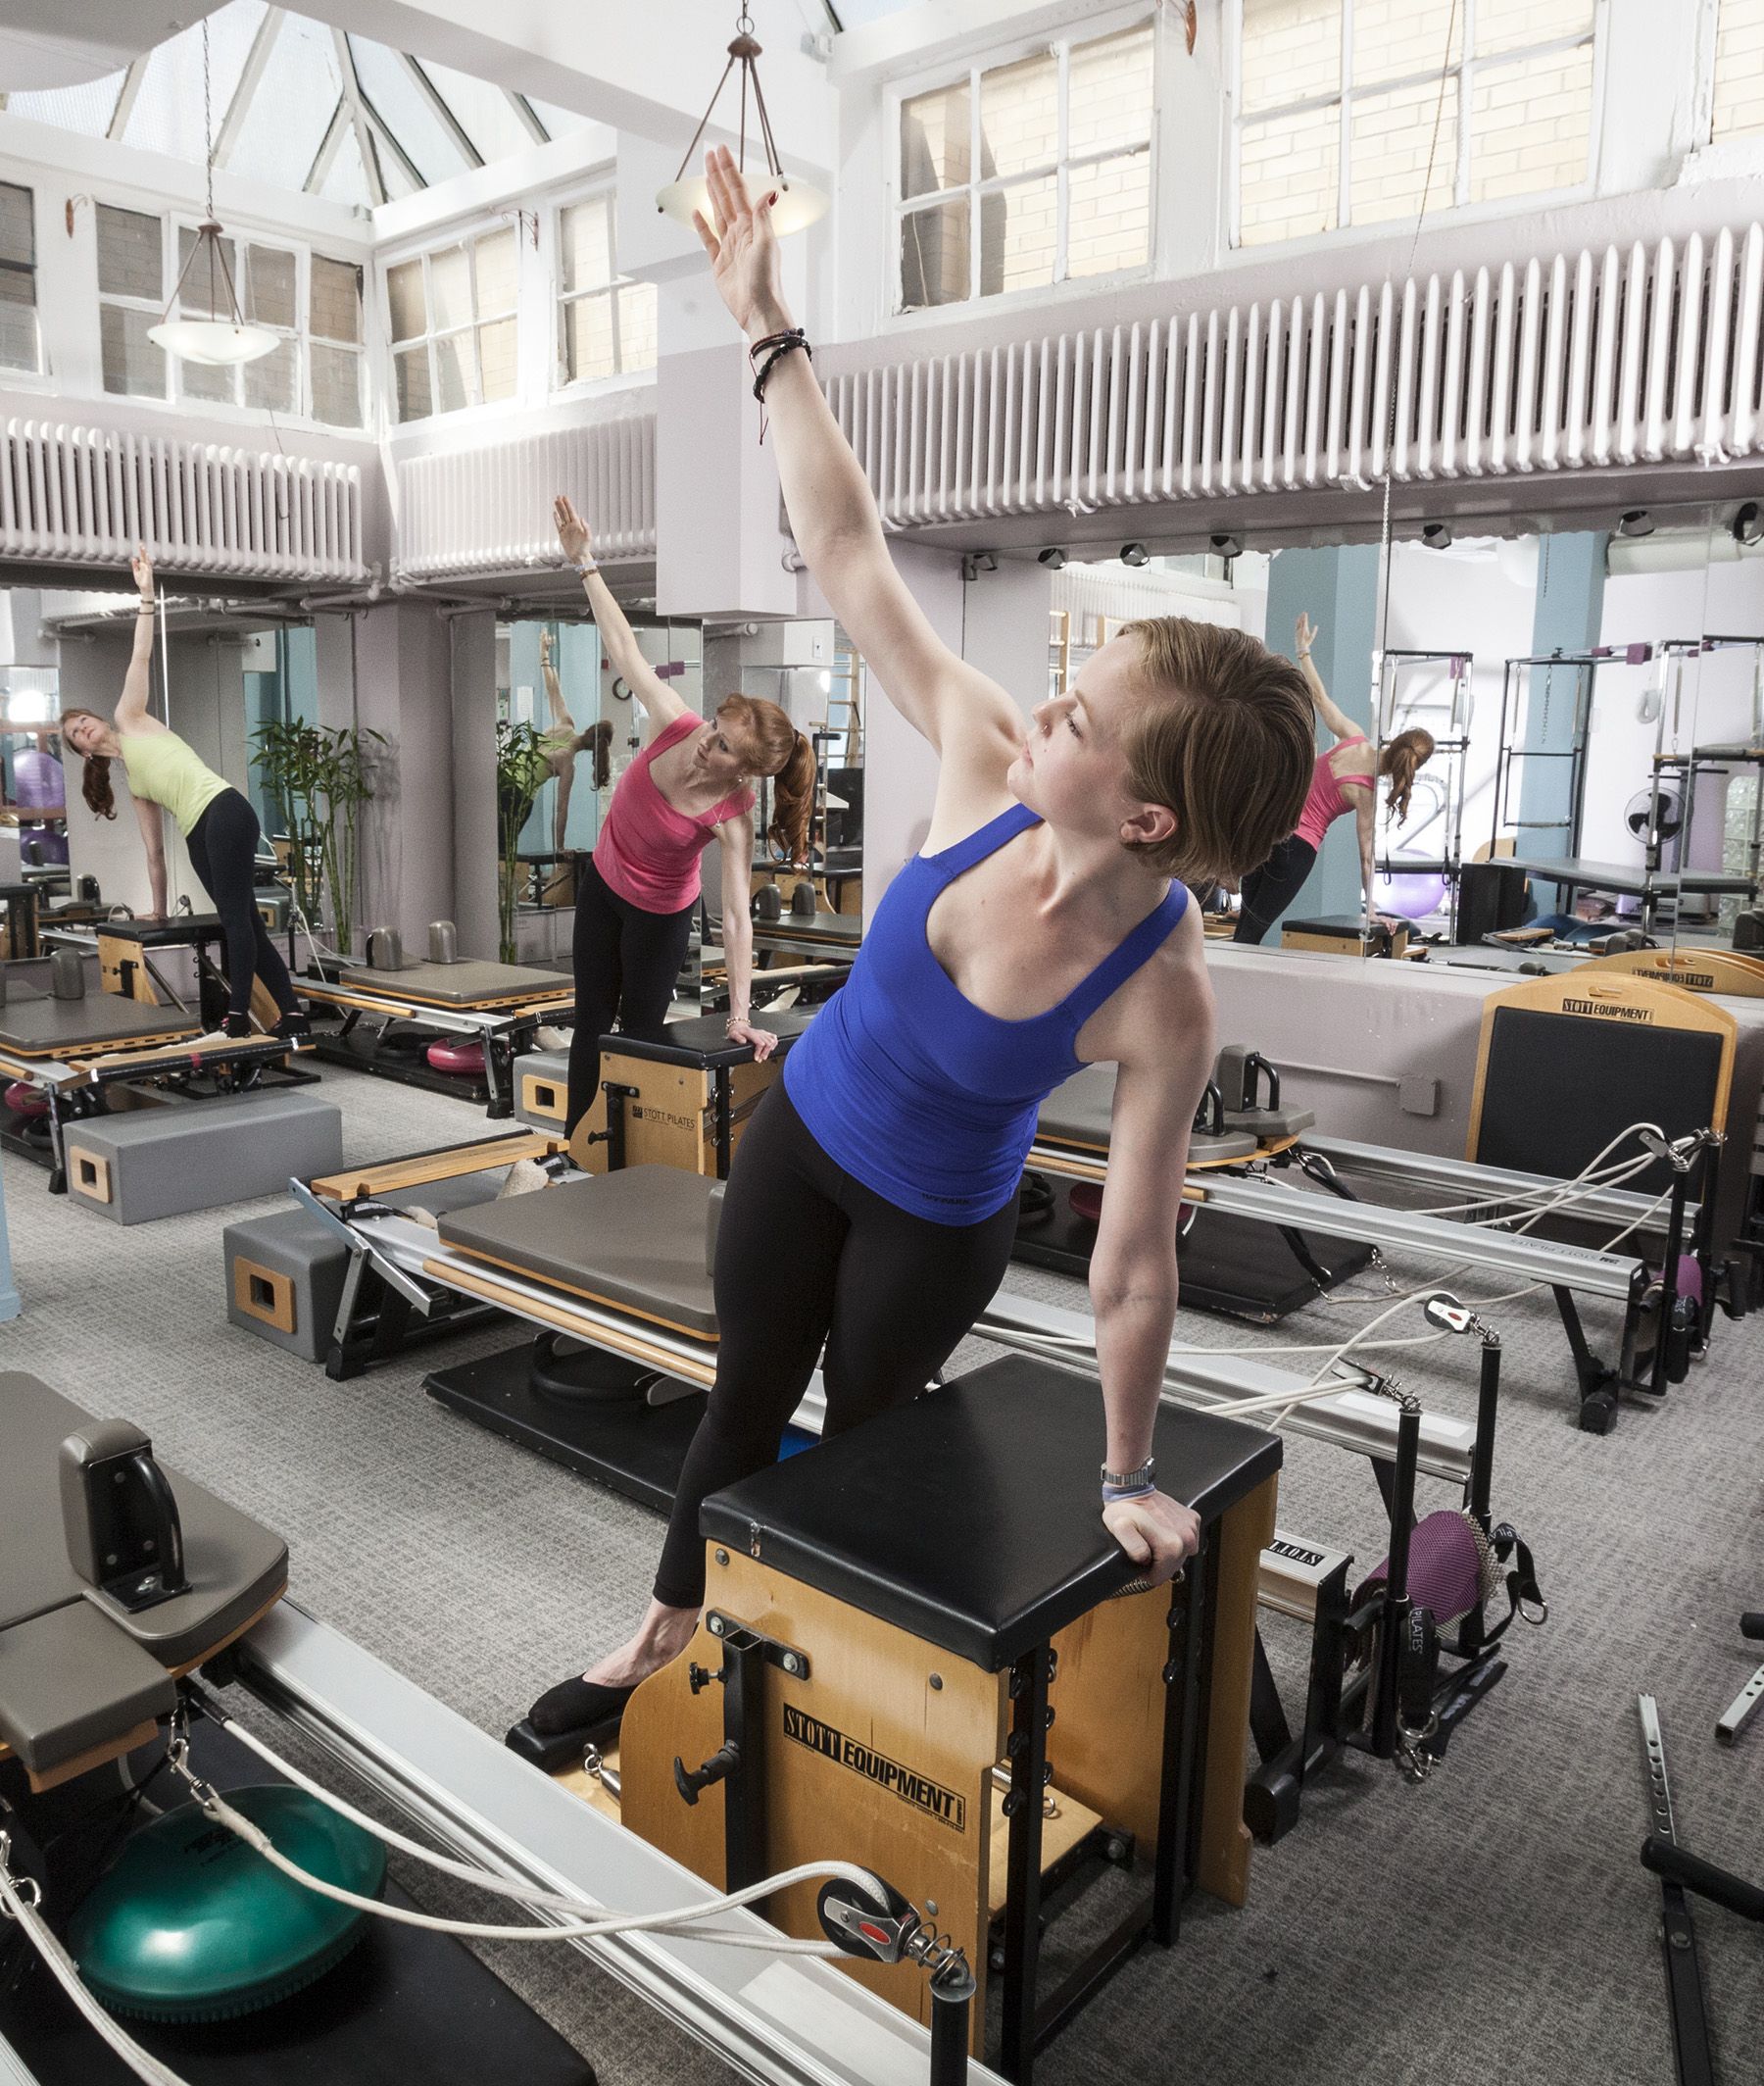 Split Pedal Stability Chair With Handles: Pilates Studio In Midtown New York City